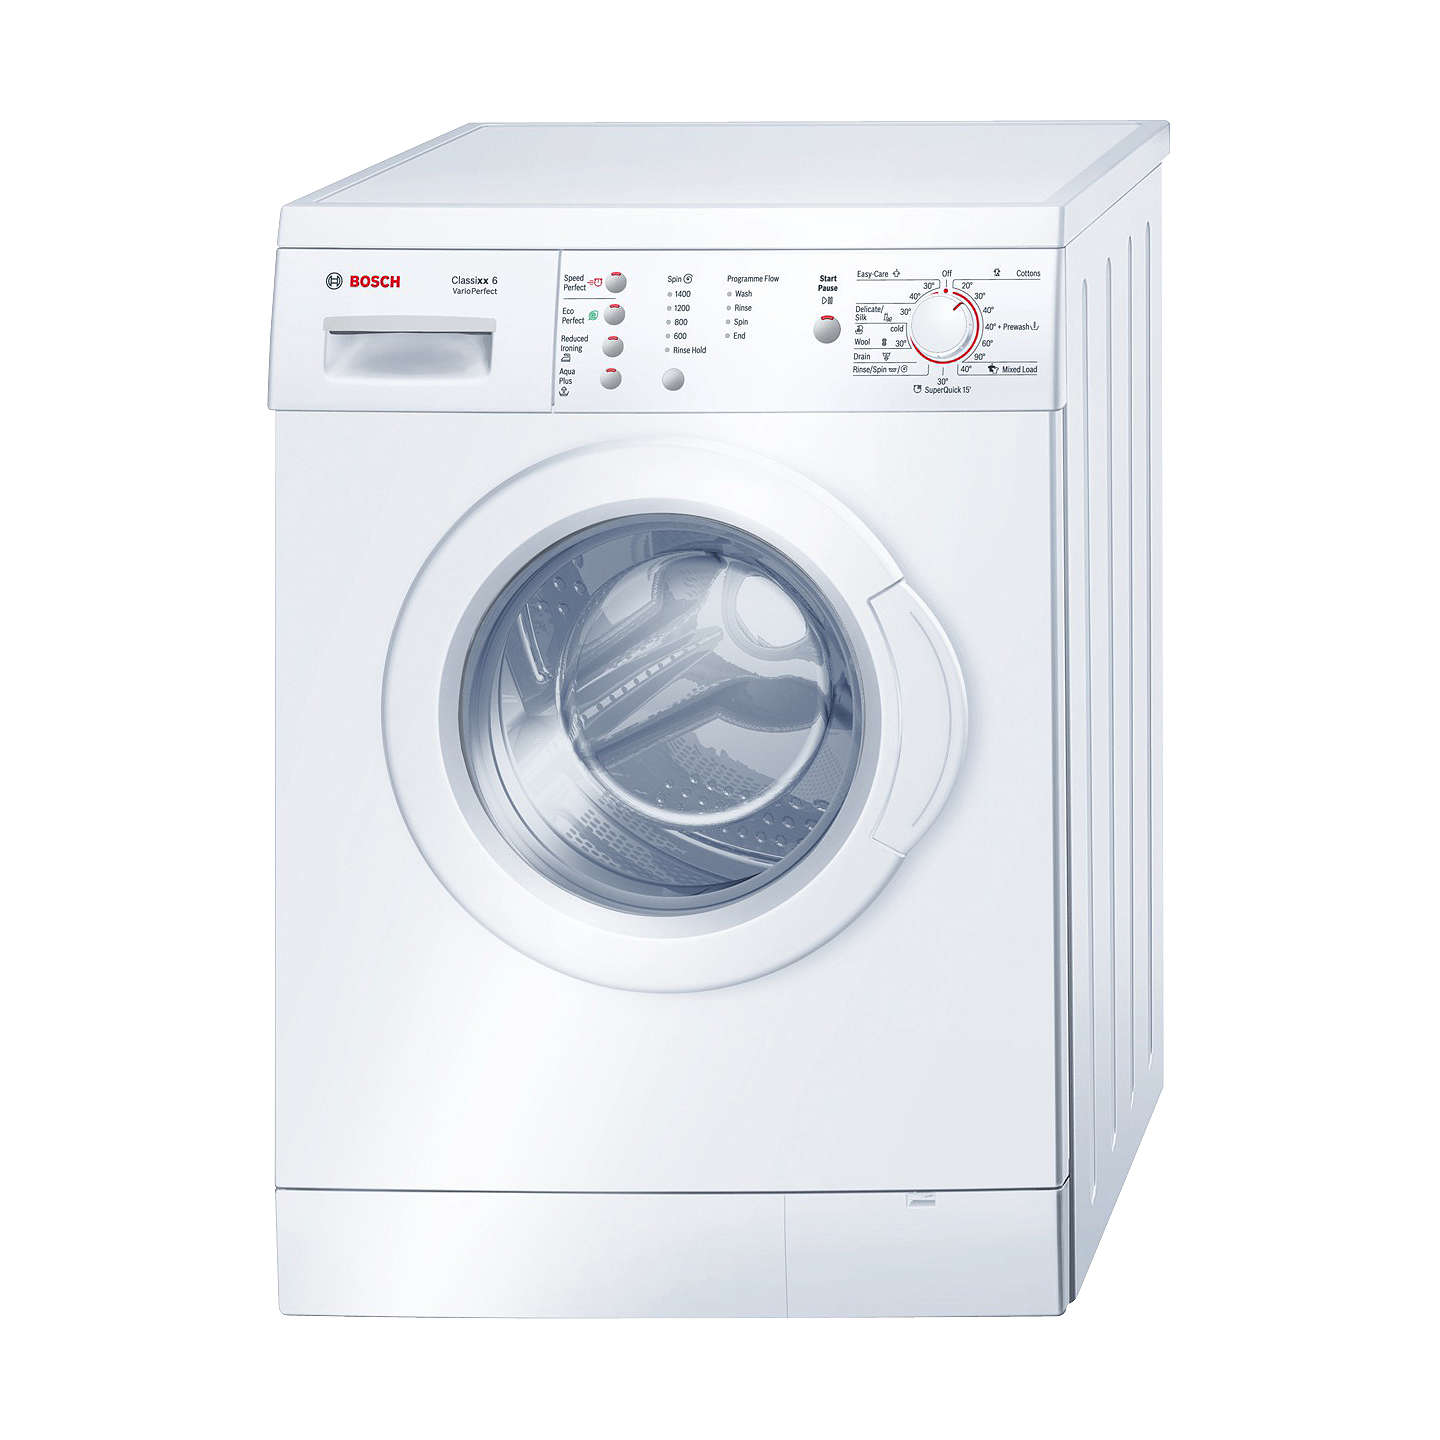 bosch classixx 5 washing machine manual ultimate user guide u2022 rh lovebdsobuj com bosch logixx dryer instructions bosch classixx dryer manual